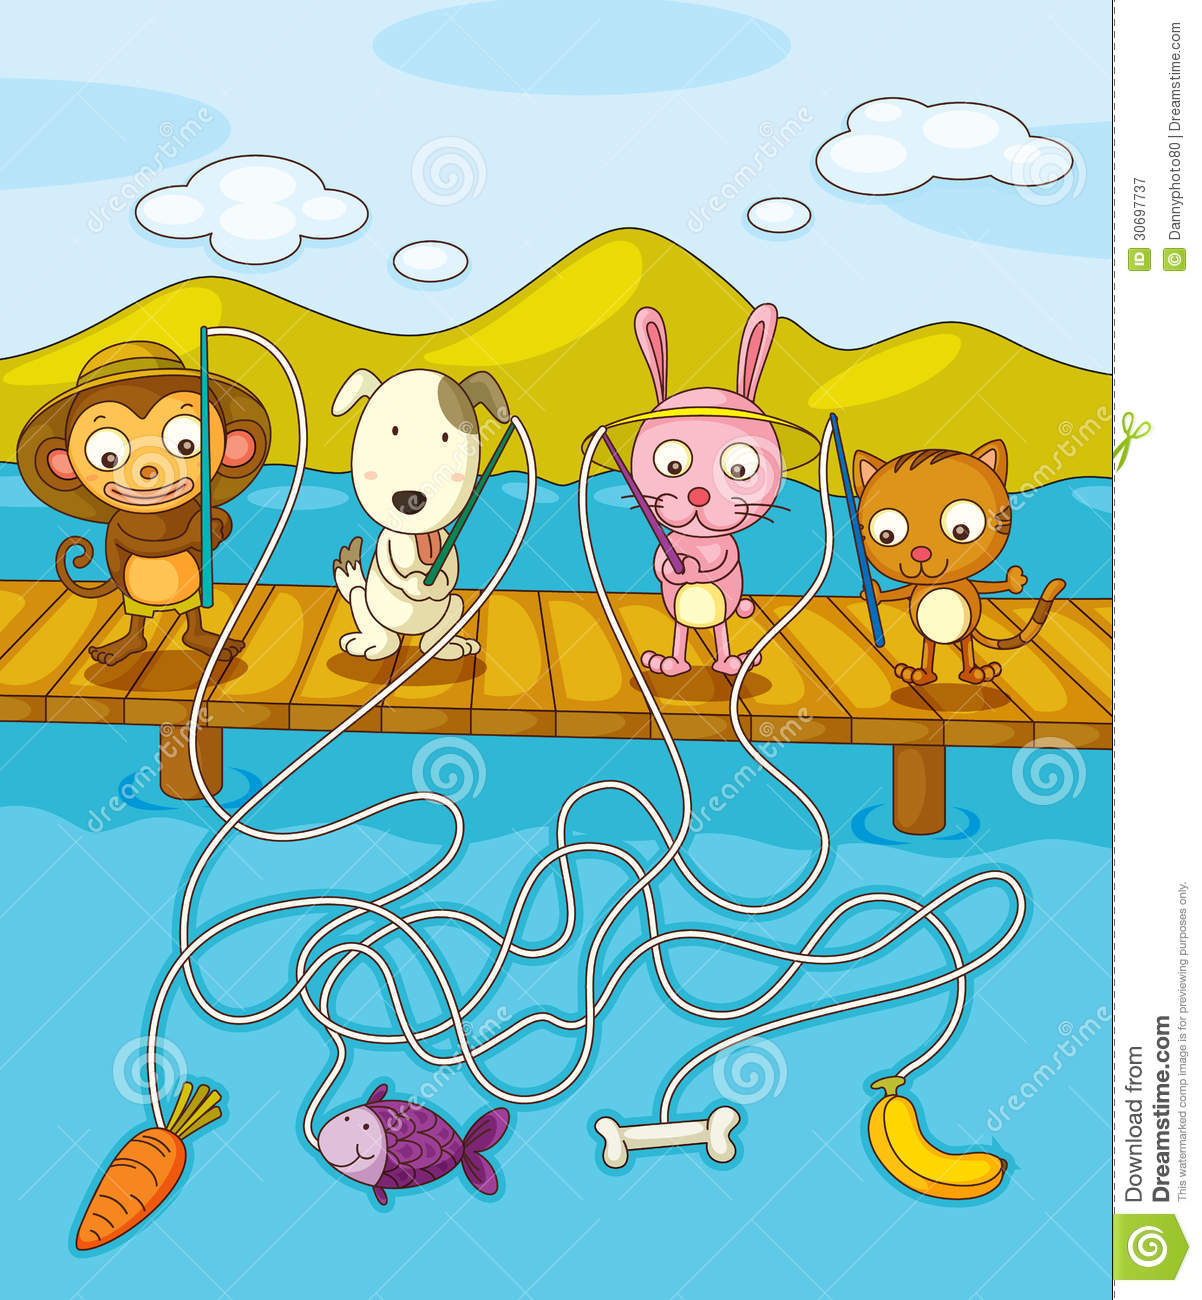 Fishing Worksheet Stock Vector Illustration Of Activity